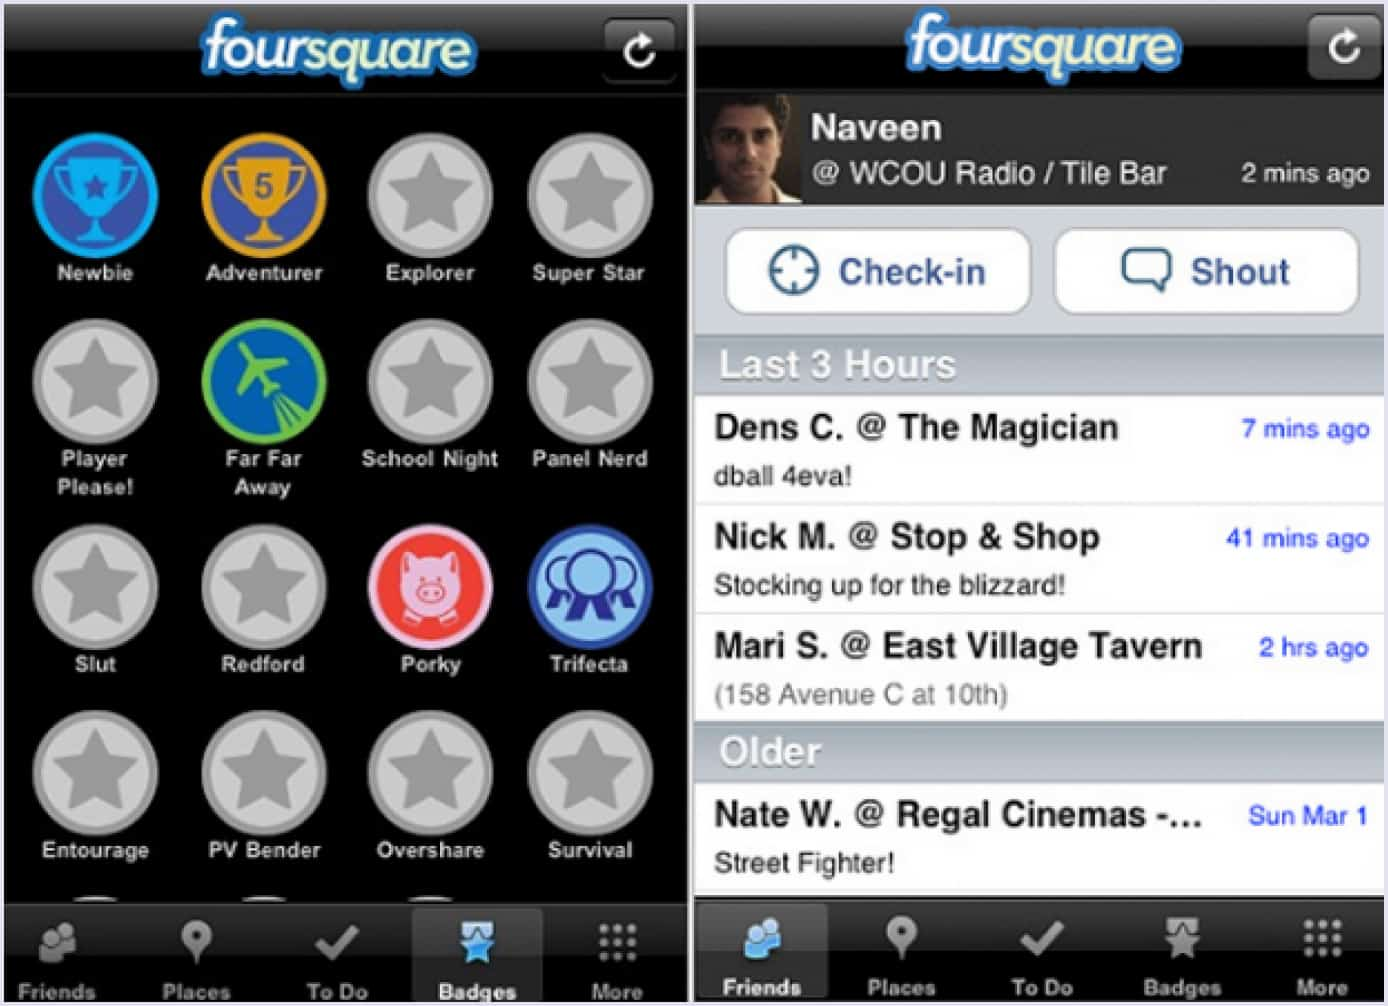 Example of a minimum viable product by Foursquare